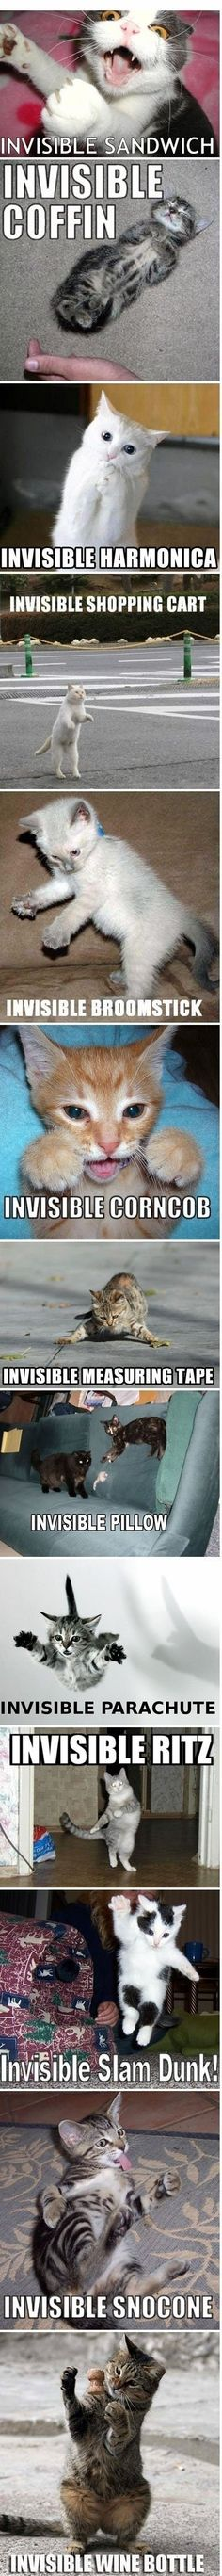 Invisible cat. So cute. Haha!! I thought of Johnny Cat.